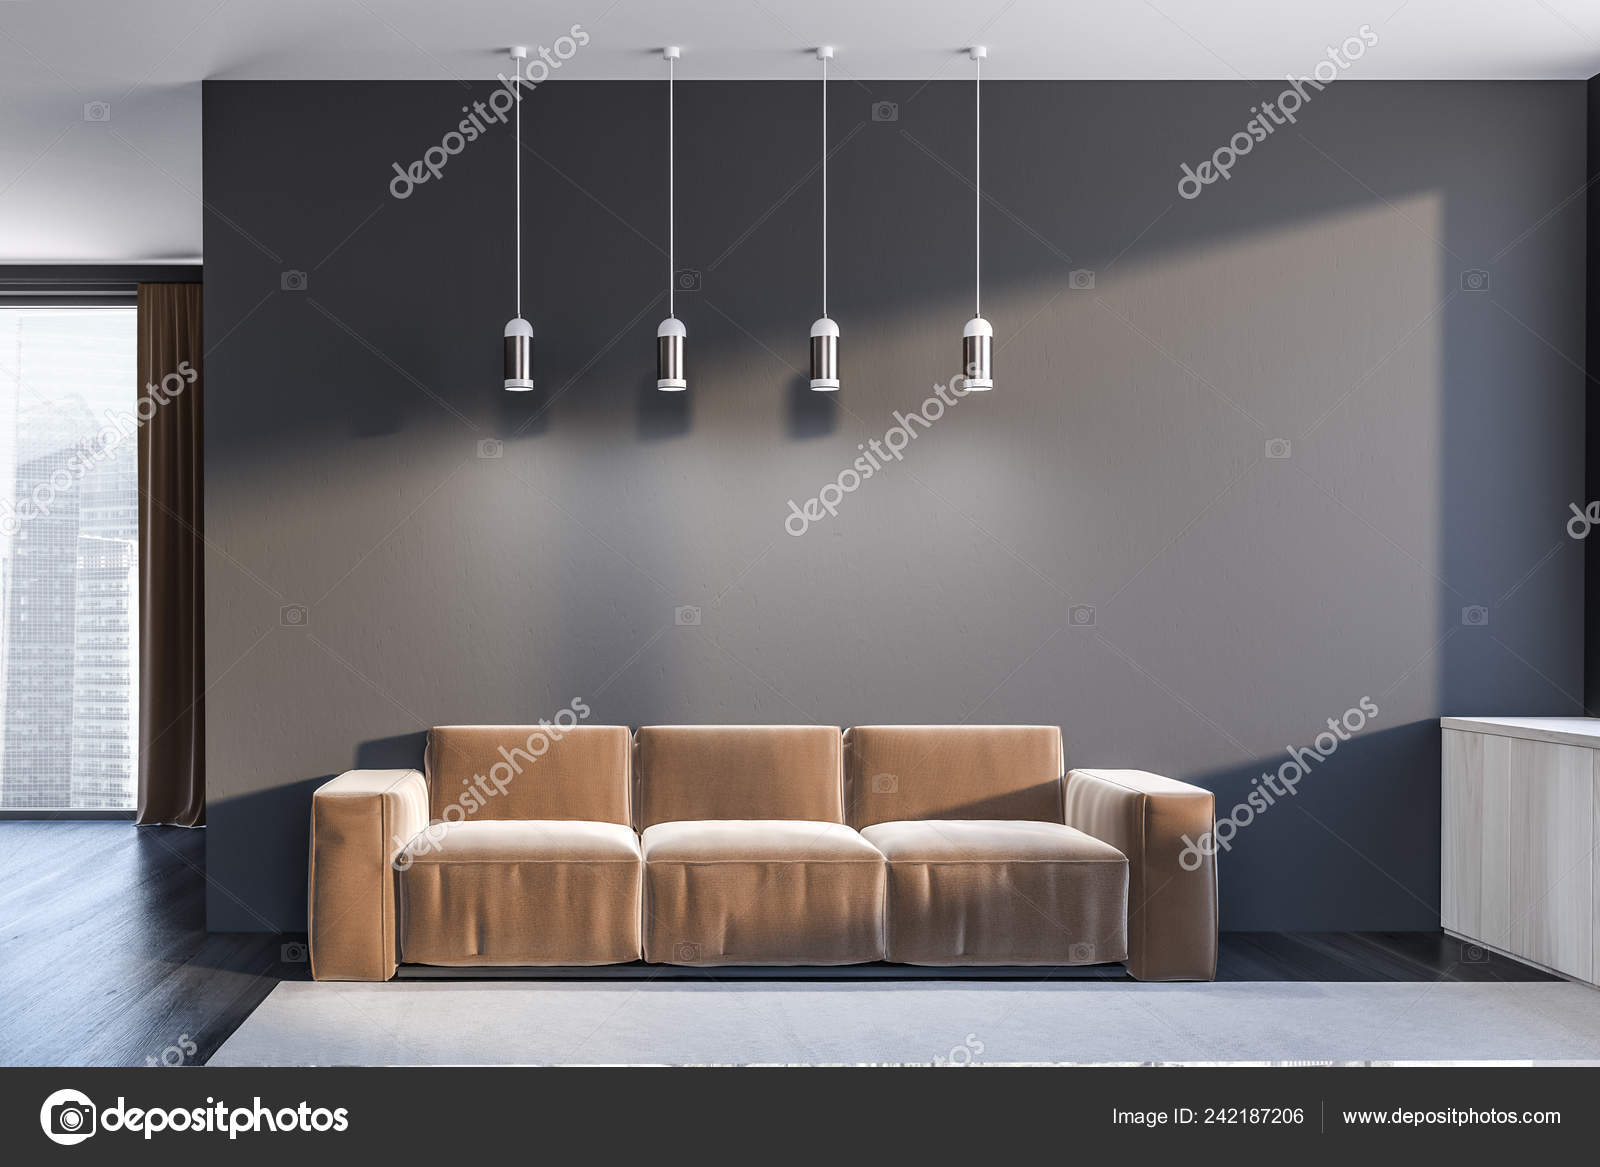 Pleasing Interior Minimalistic Living Room Gray Walls Black Wooden Dailytribune Chair Design For Home Dailytribuneorg